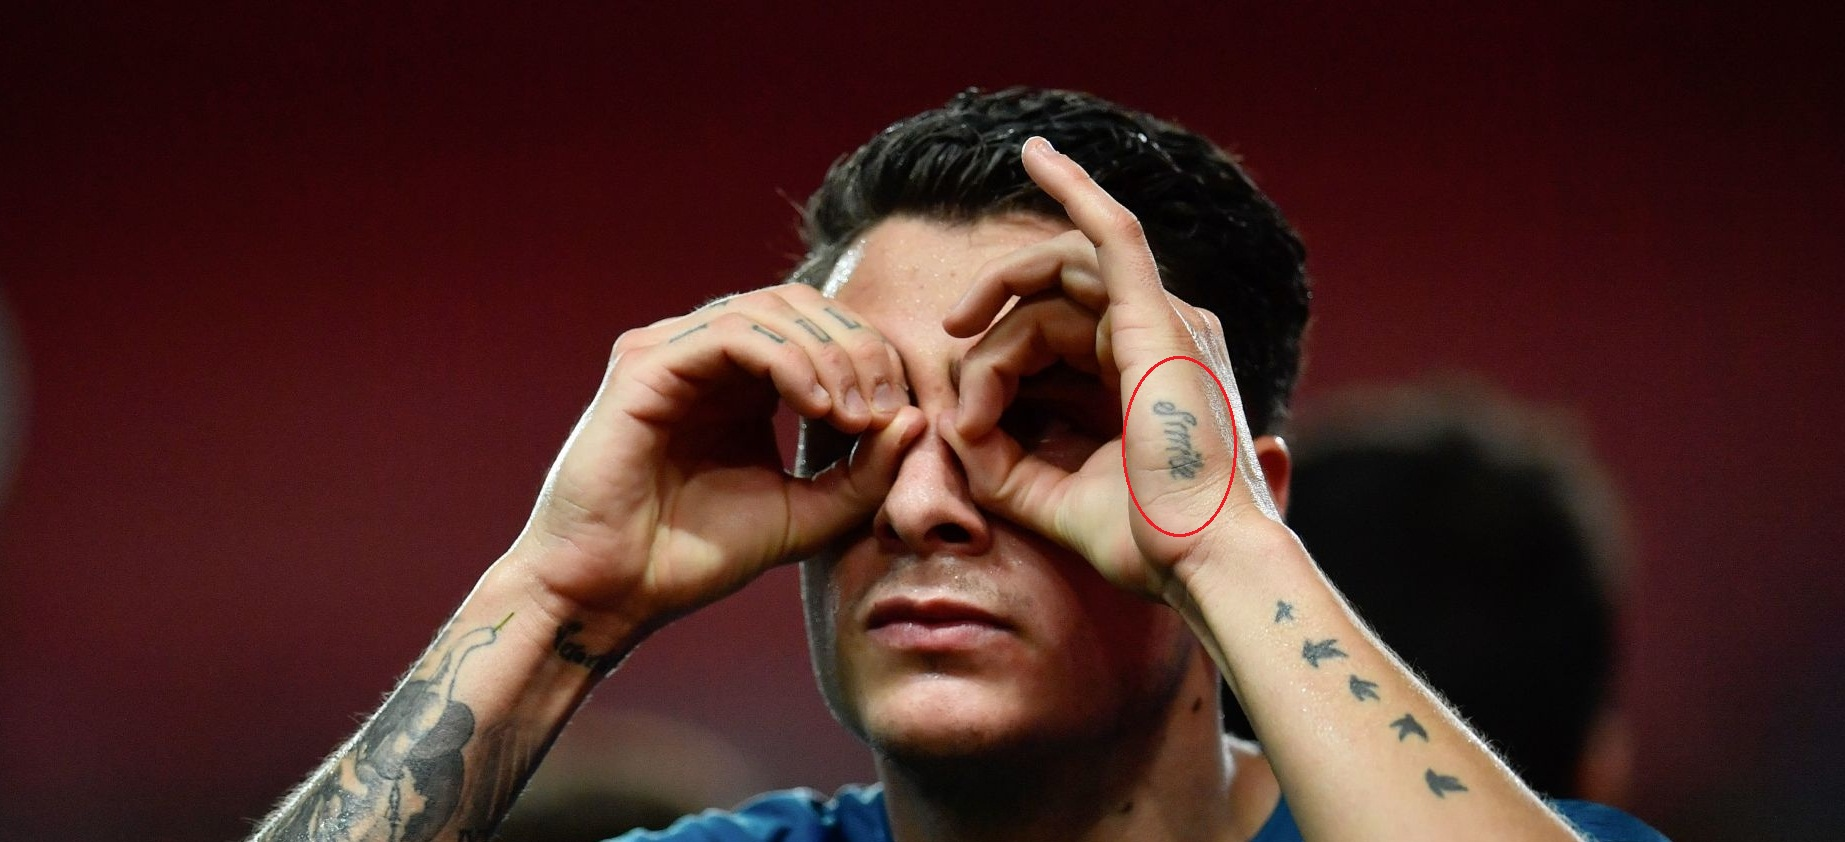 Jose Gimenez Left Hand Smile Tattoo